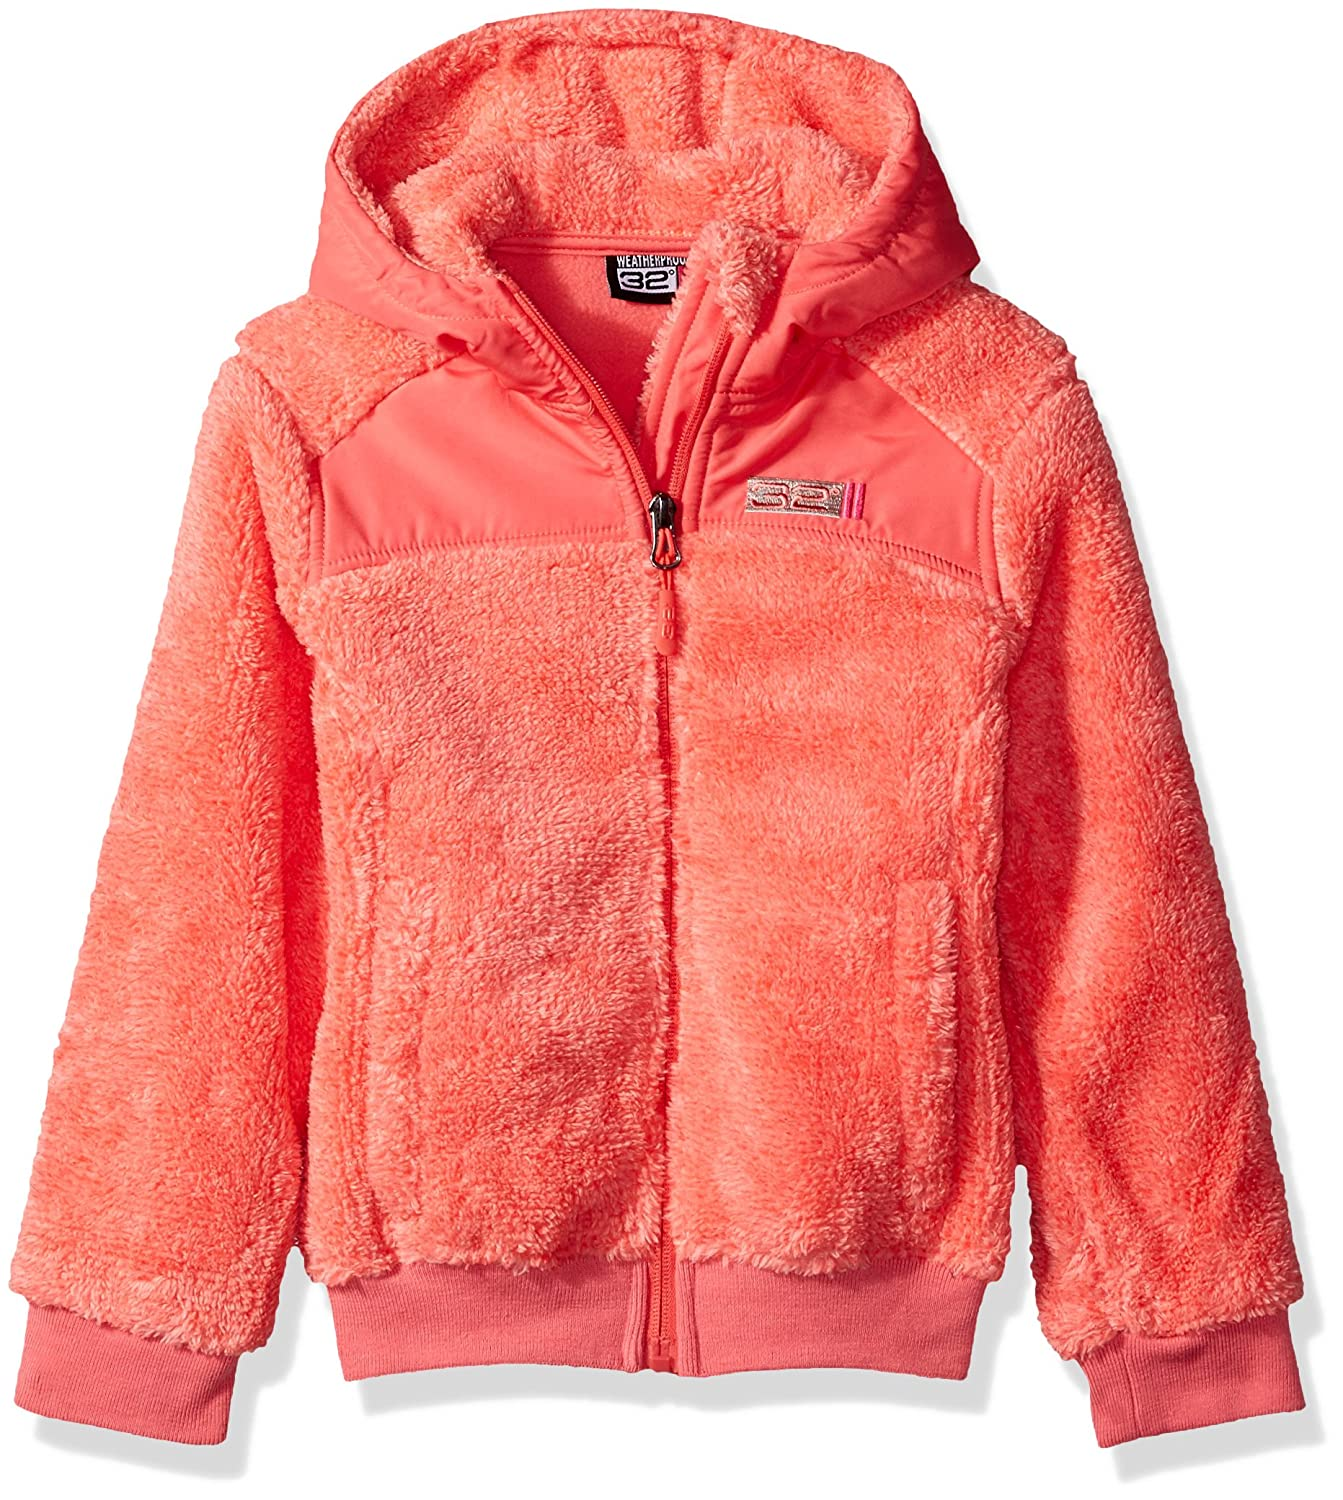 32 DEGREES Weatherproof Toddler Girls Outerwear Jacket (More Styles Available), Two Toned-WG198-Coral, 4T